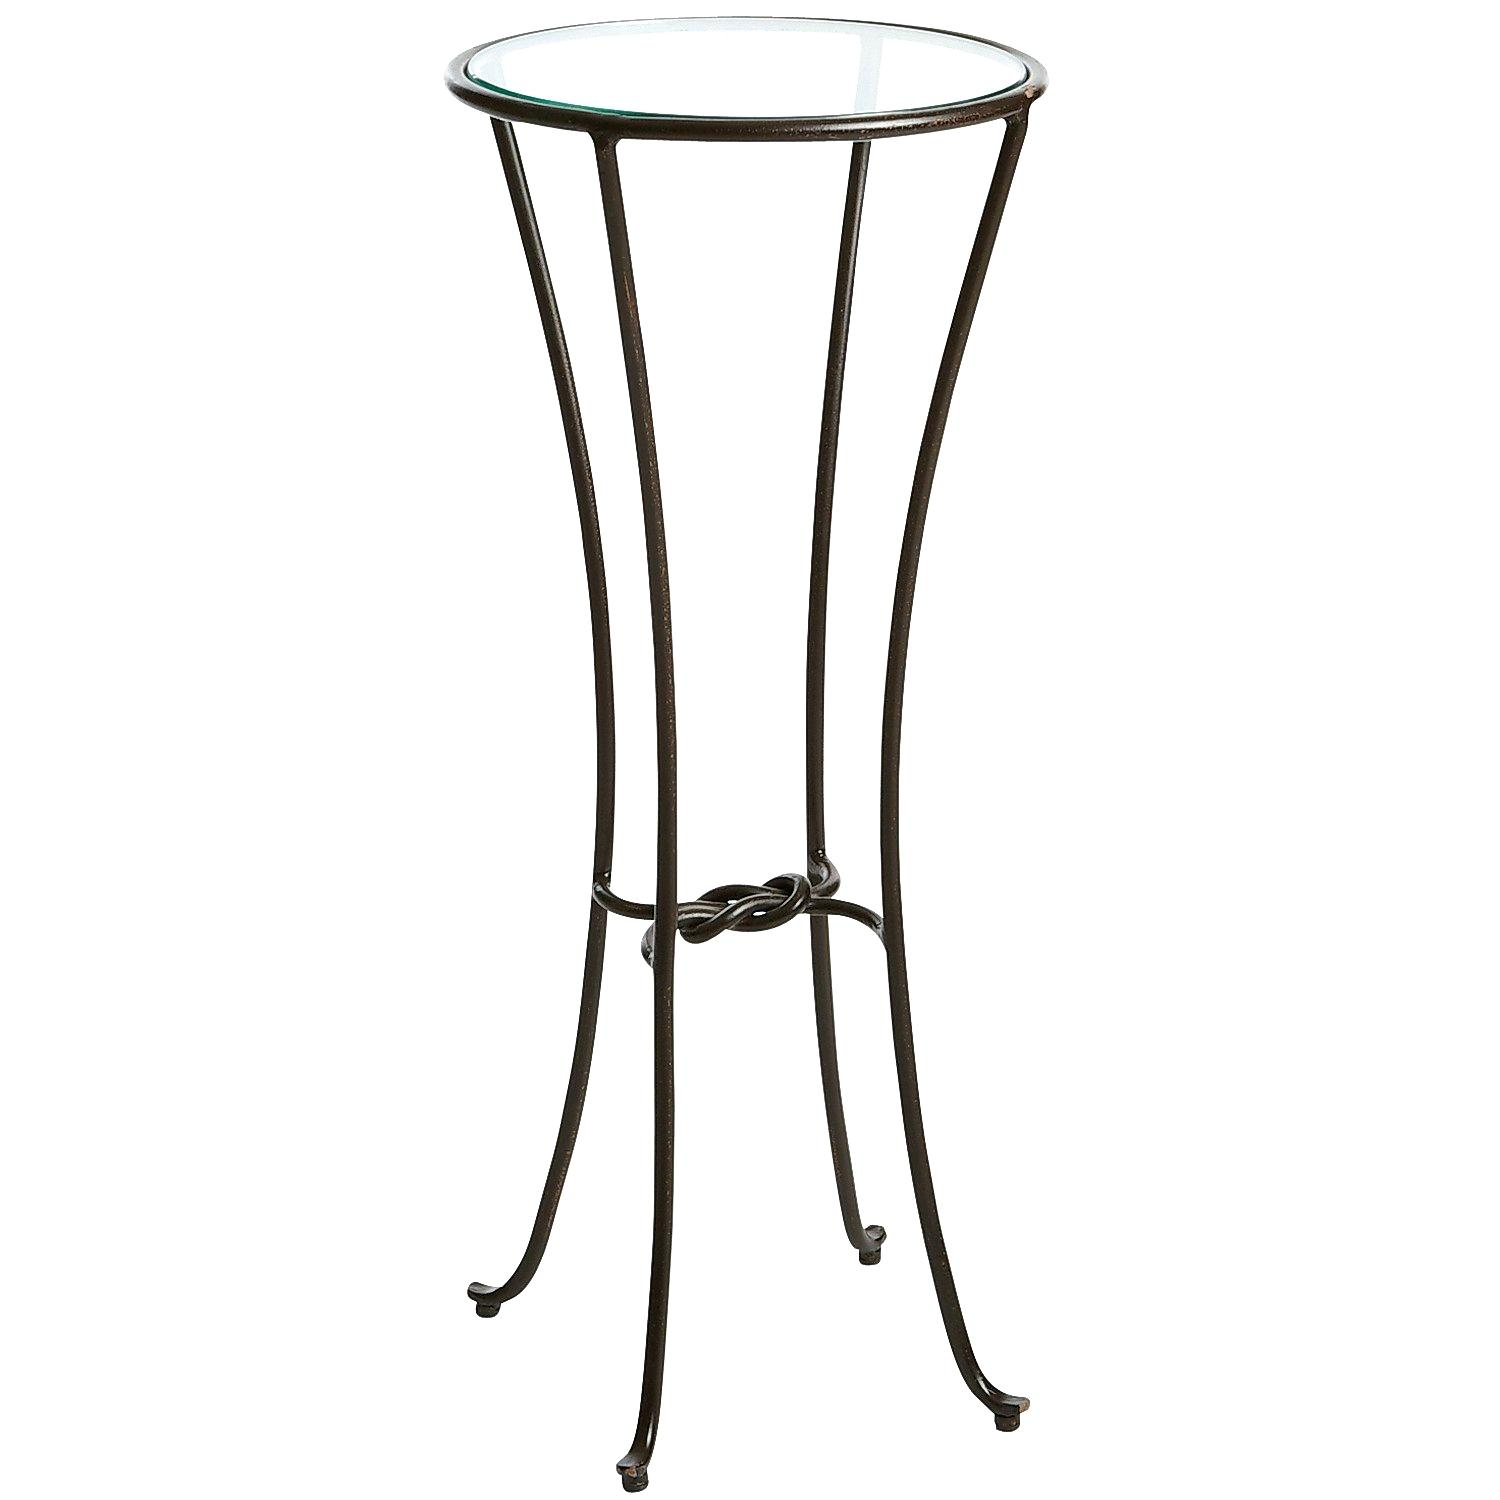 black pedestal table kotok info and chairs accent metal zinc vintage sofa designs lamp oblong cover white round bedside square legs nest tables patio beverage cooler pottery barn